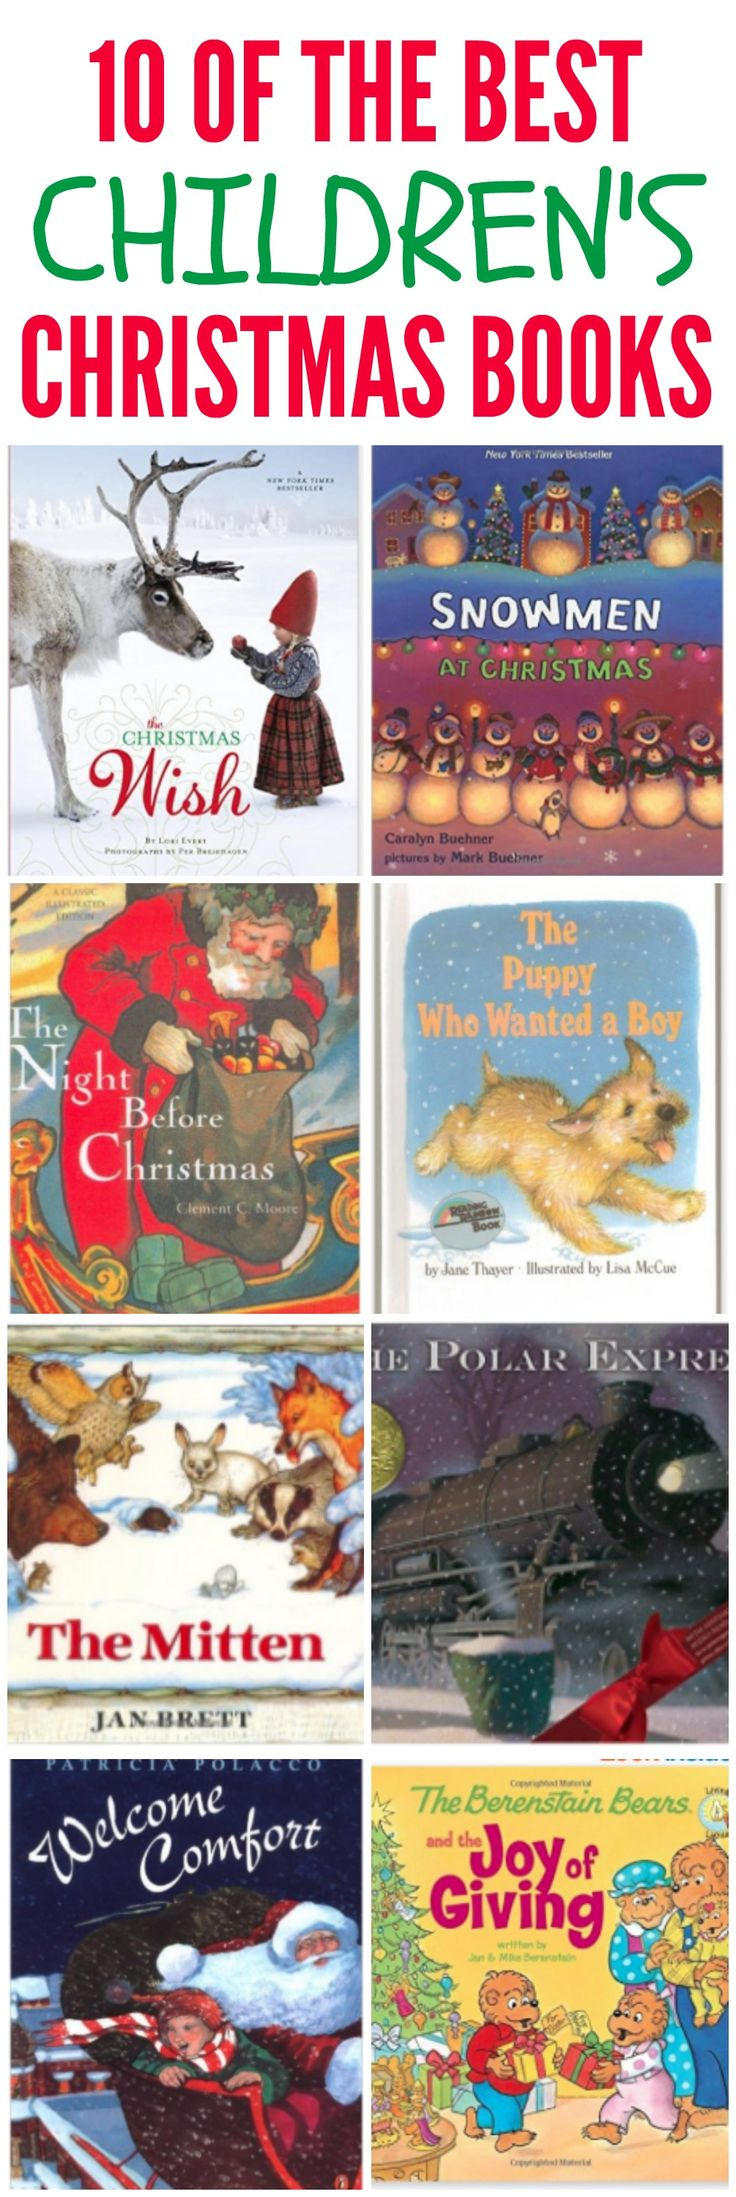 10 of the Best Children's Christmas Books to read this holiday season